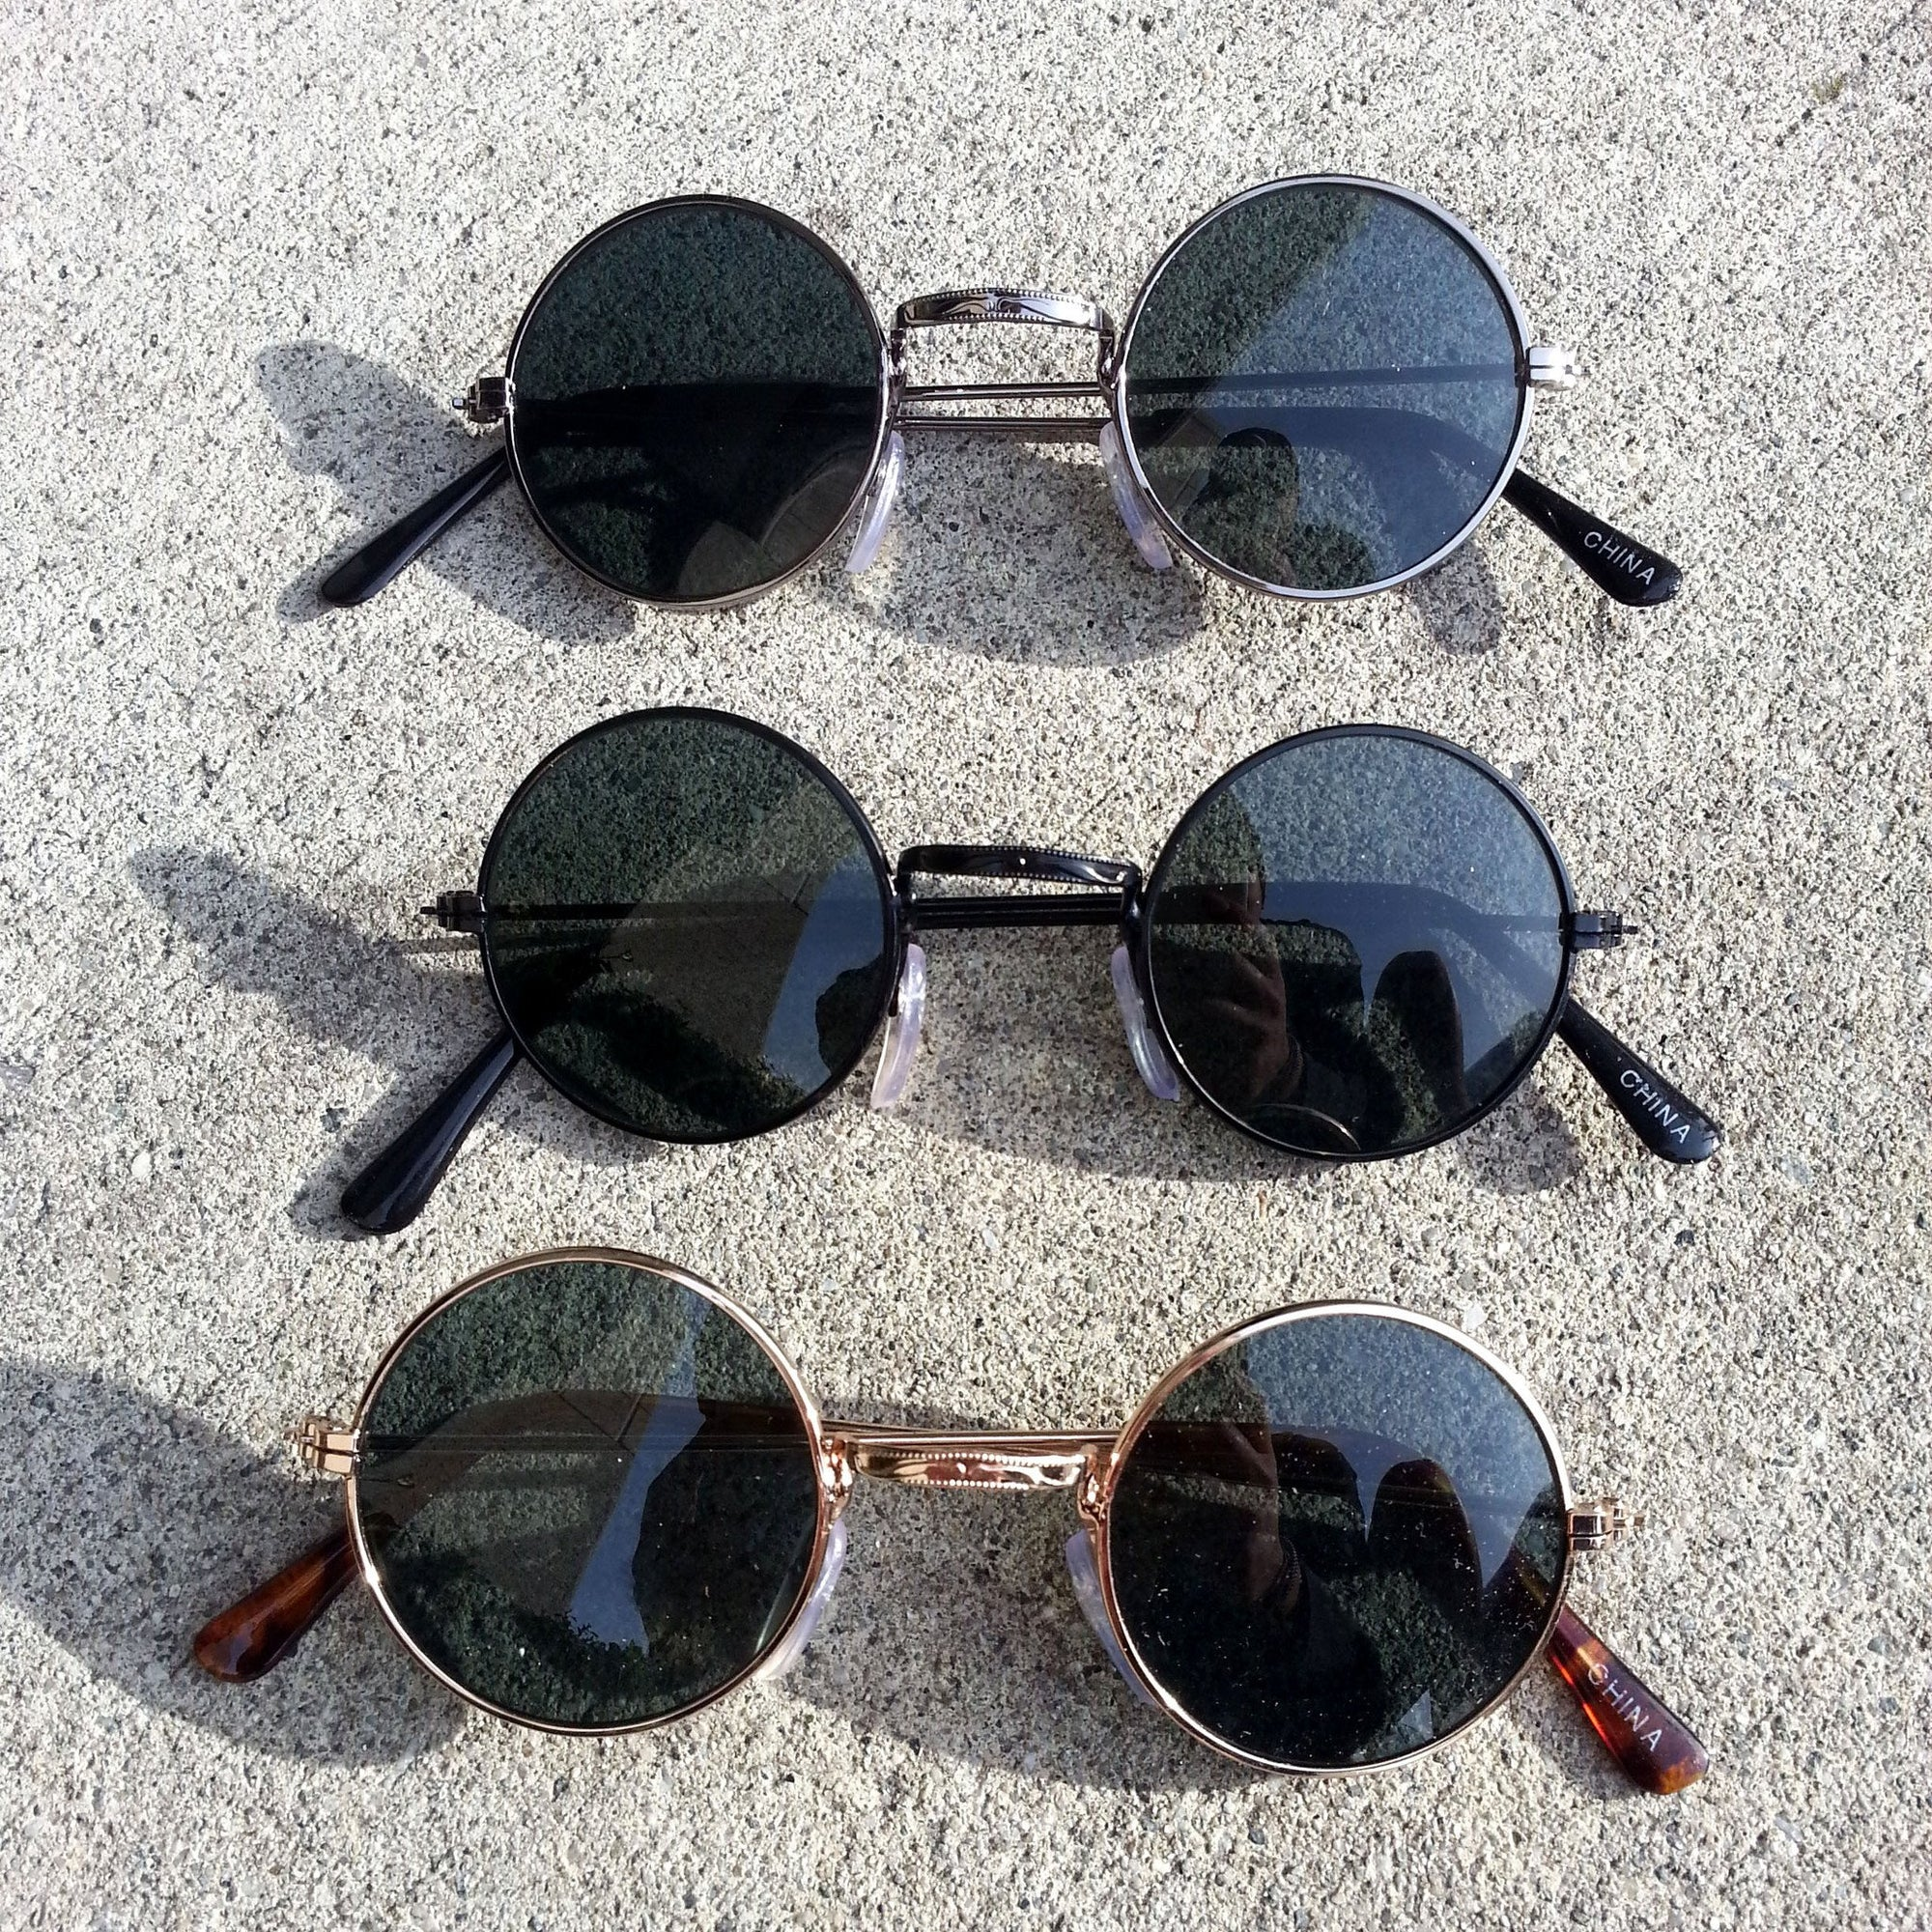 Genuine Steampunk Vintage Round Spectacles Sunglasses 7012